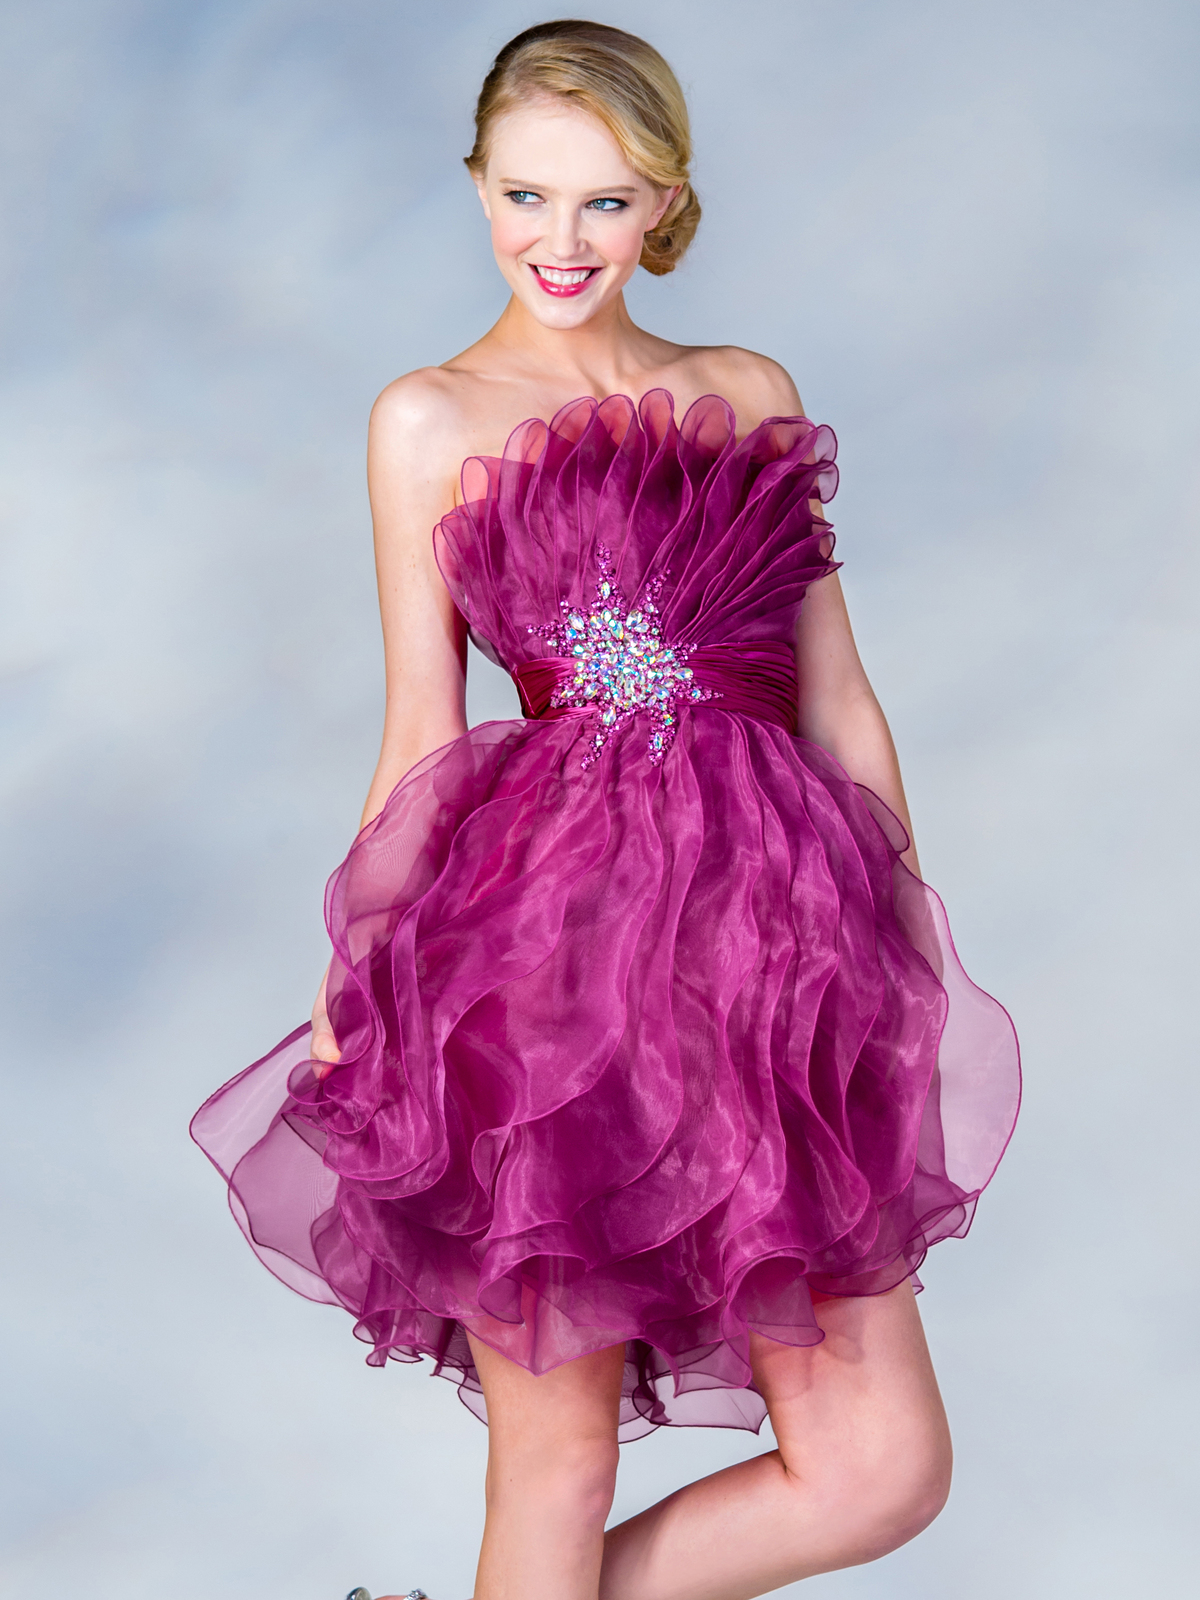 Ruffle Prom Dress Sung Boutique L A